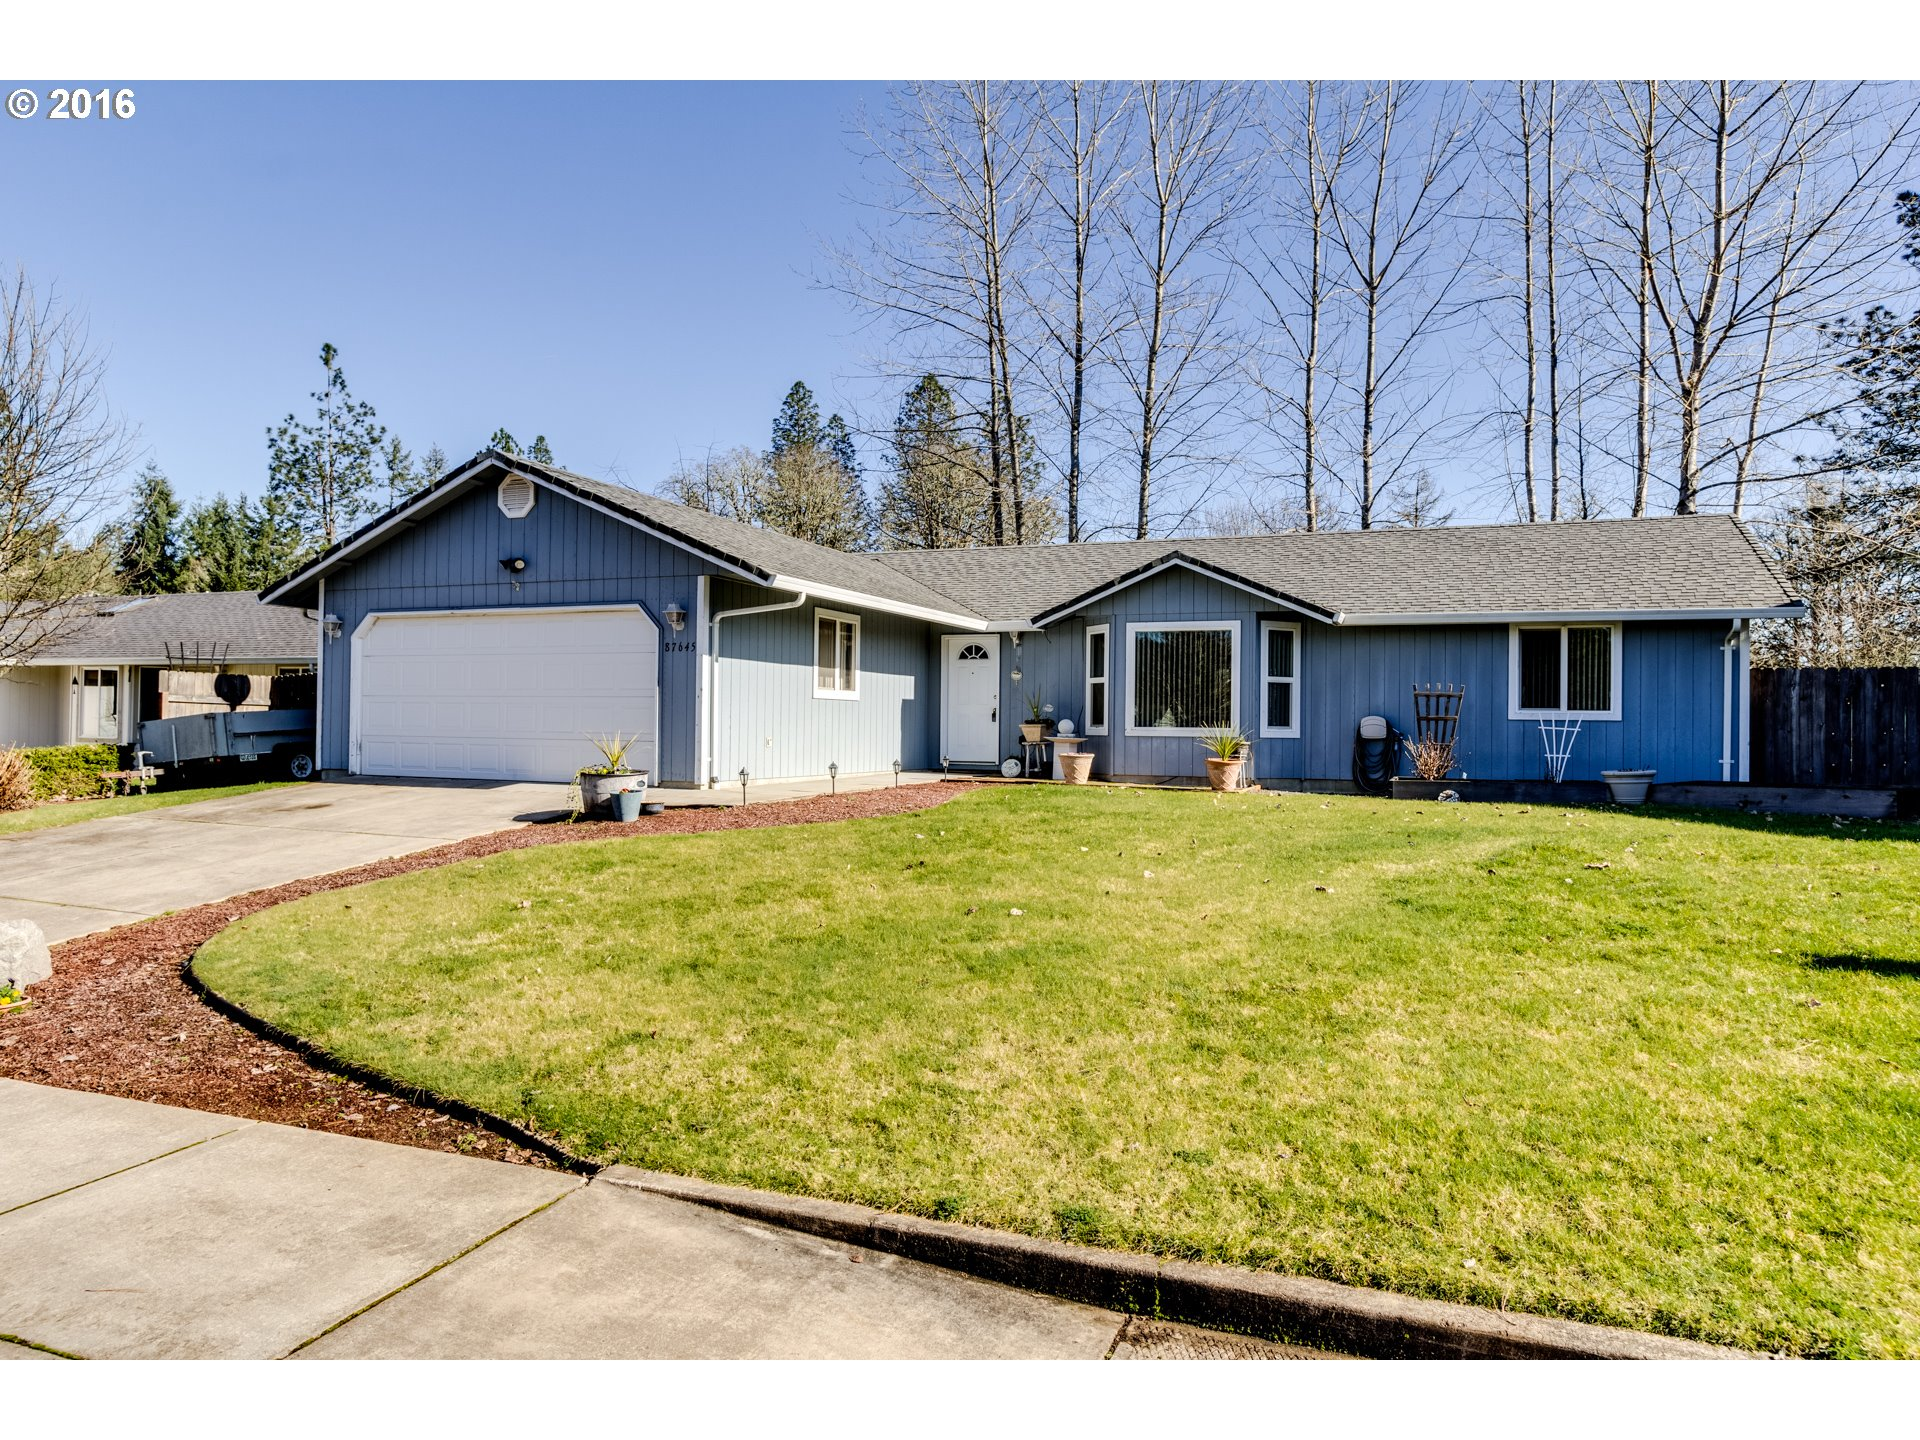 87645 Oak Island Dr, Veneta, OR